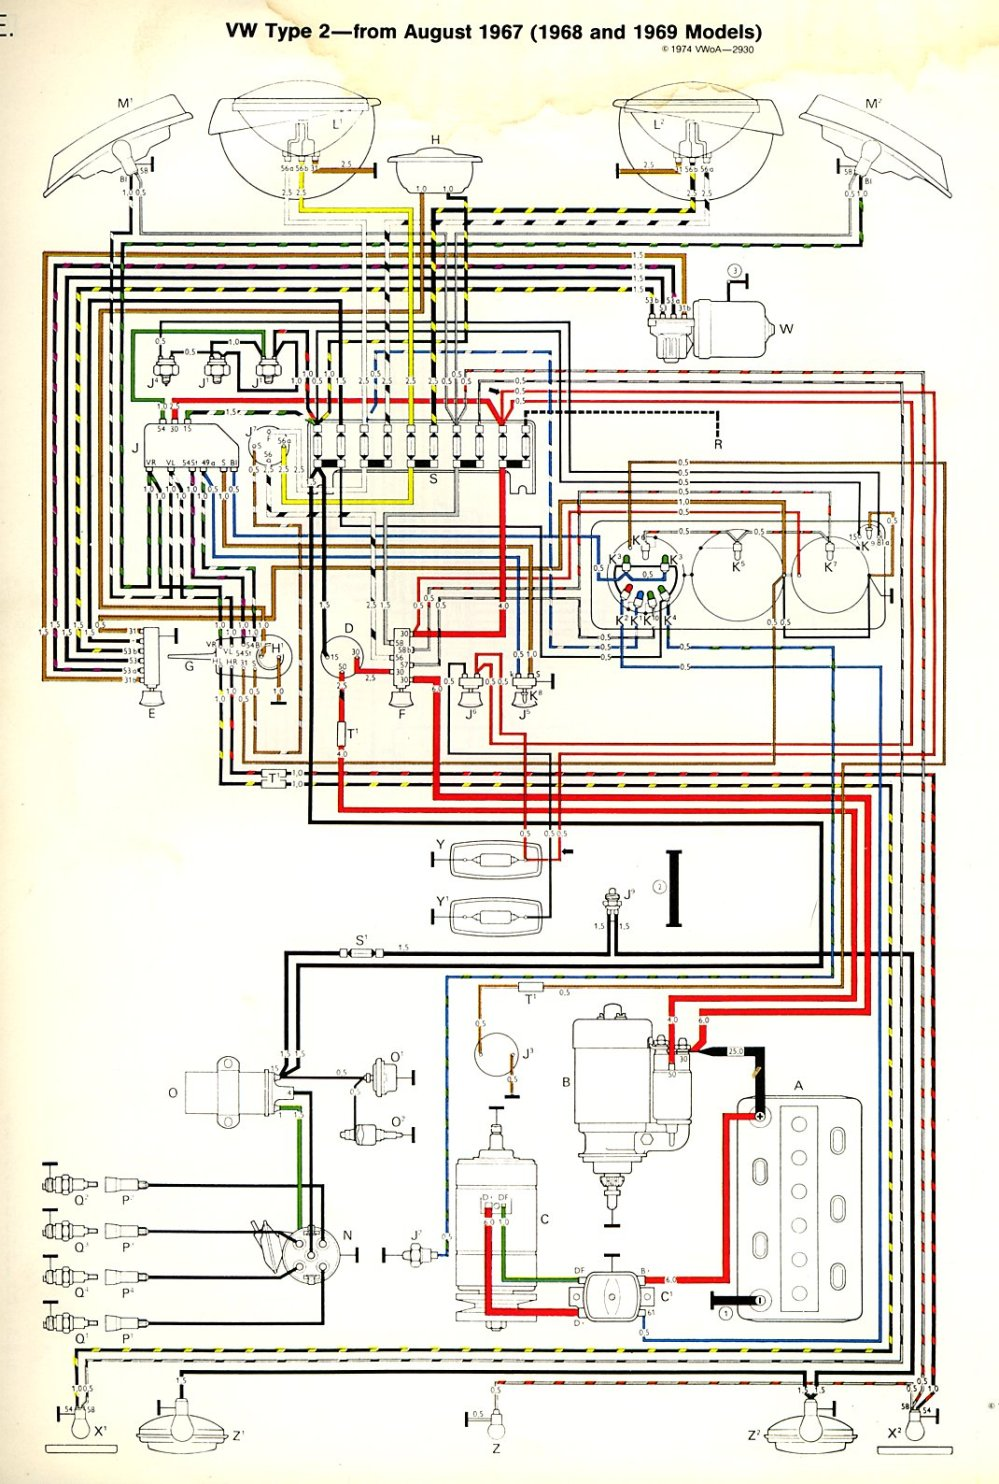 medium resolution of thesamba com type 2 wiring diagrams1970 vw bus wiring diagram 7